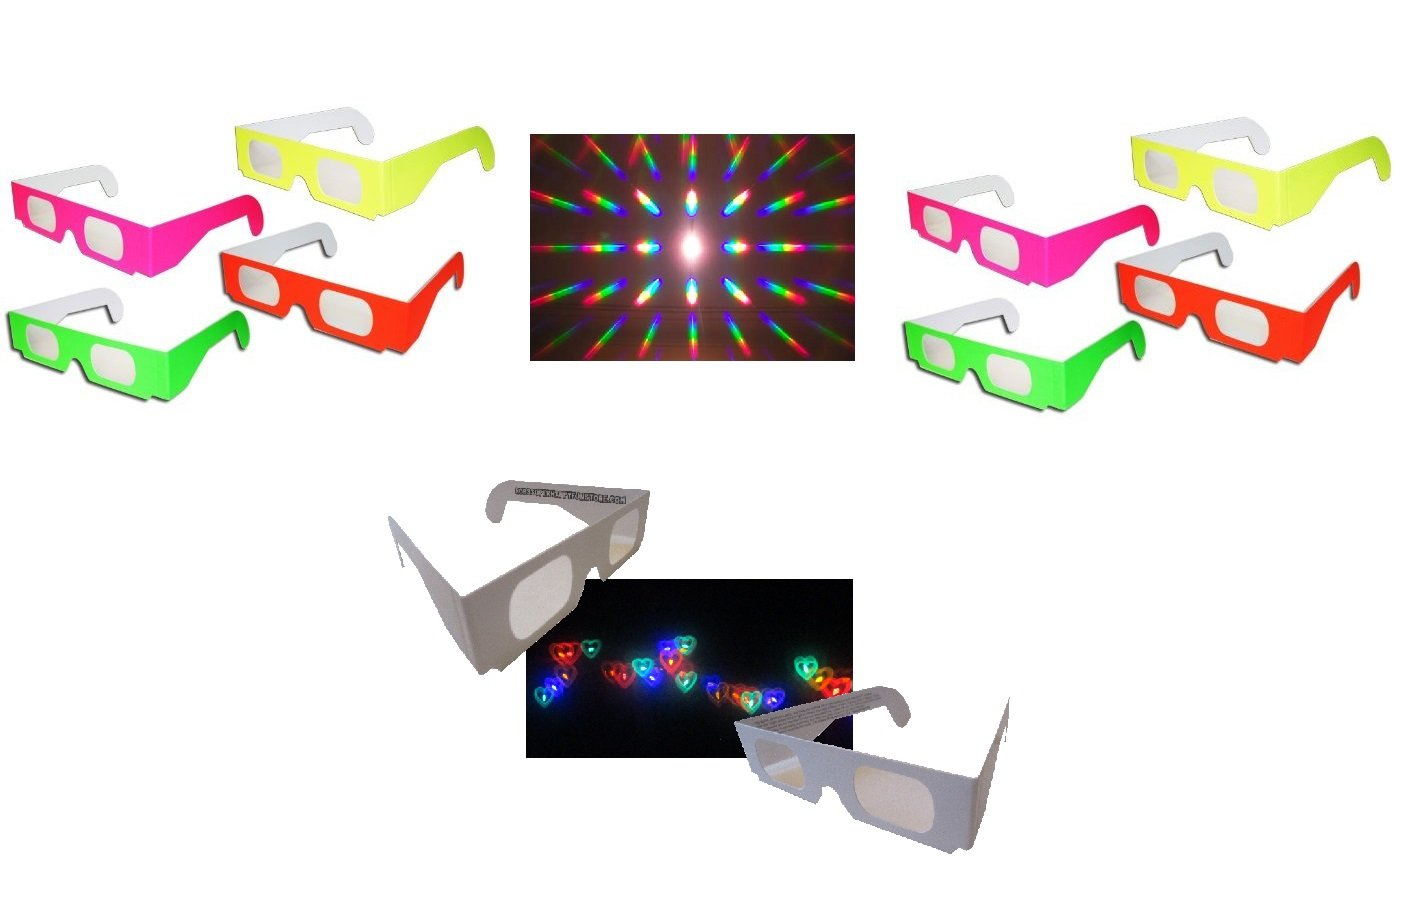 Rob's Super Happy Fun Store 10 Pair Fireworks Diffraction Glasses (8 Standard Diffraction Glasses + 2 Rainbow Hearts Diffraction Glasses)